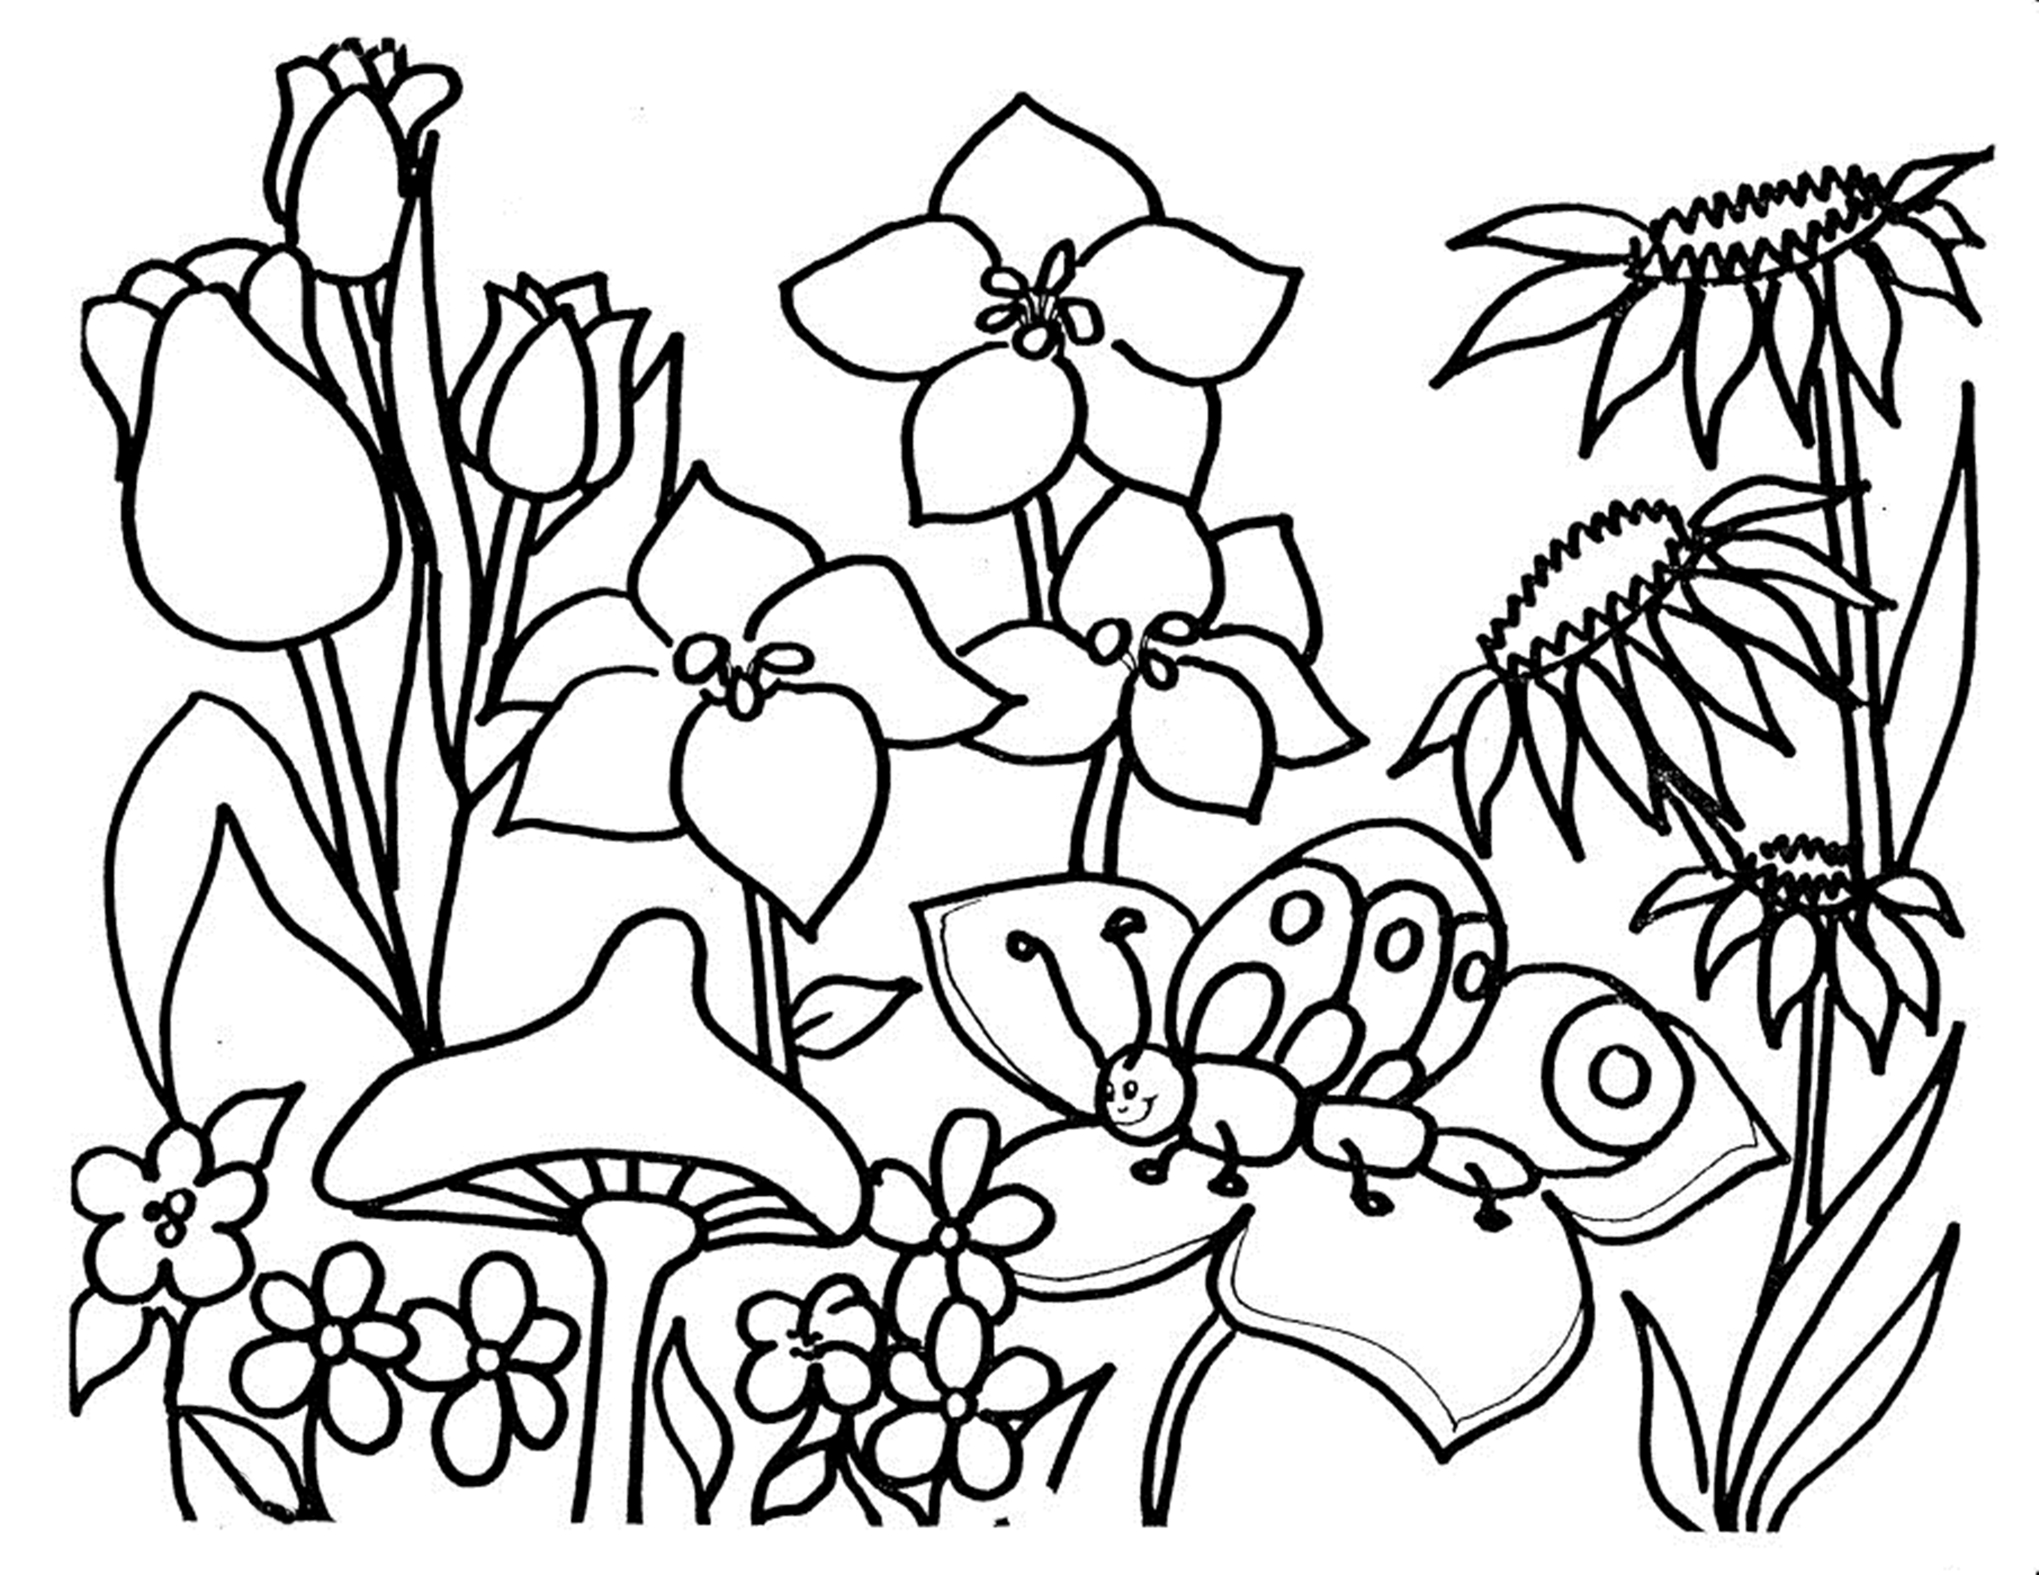 Magic image regarding printable coloring pages flowers